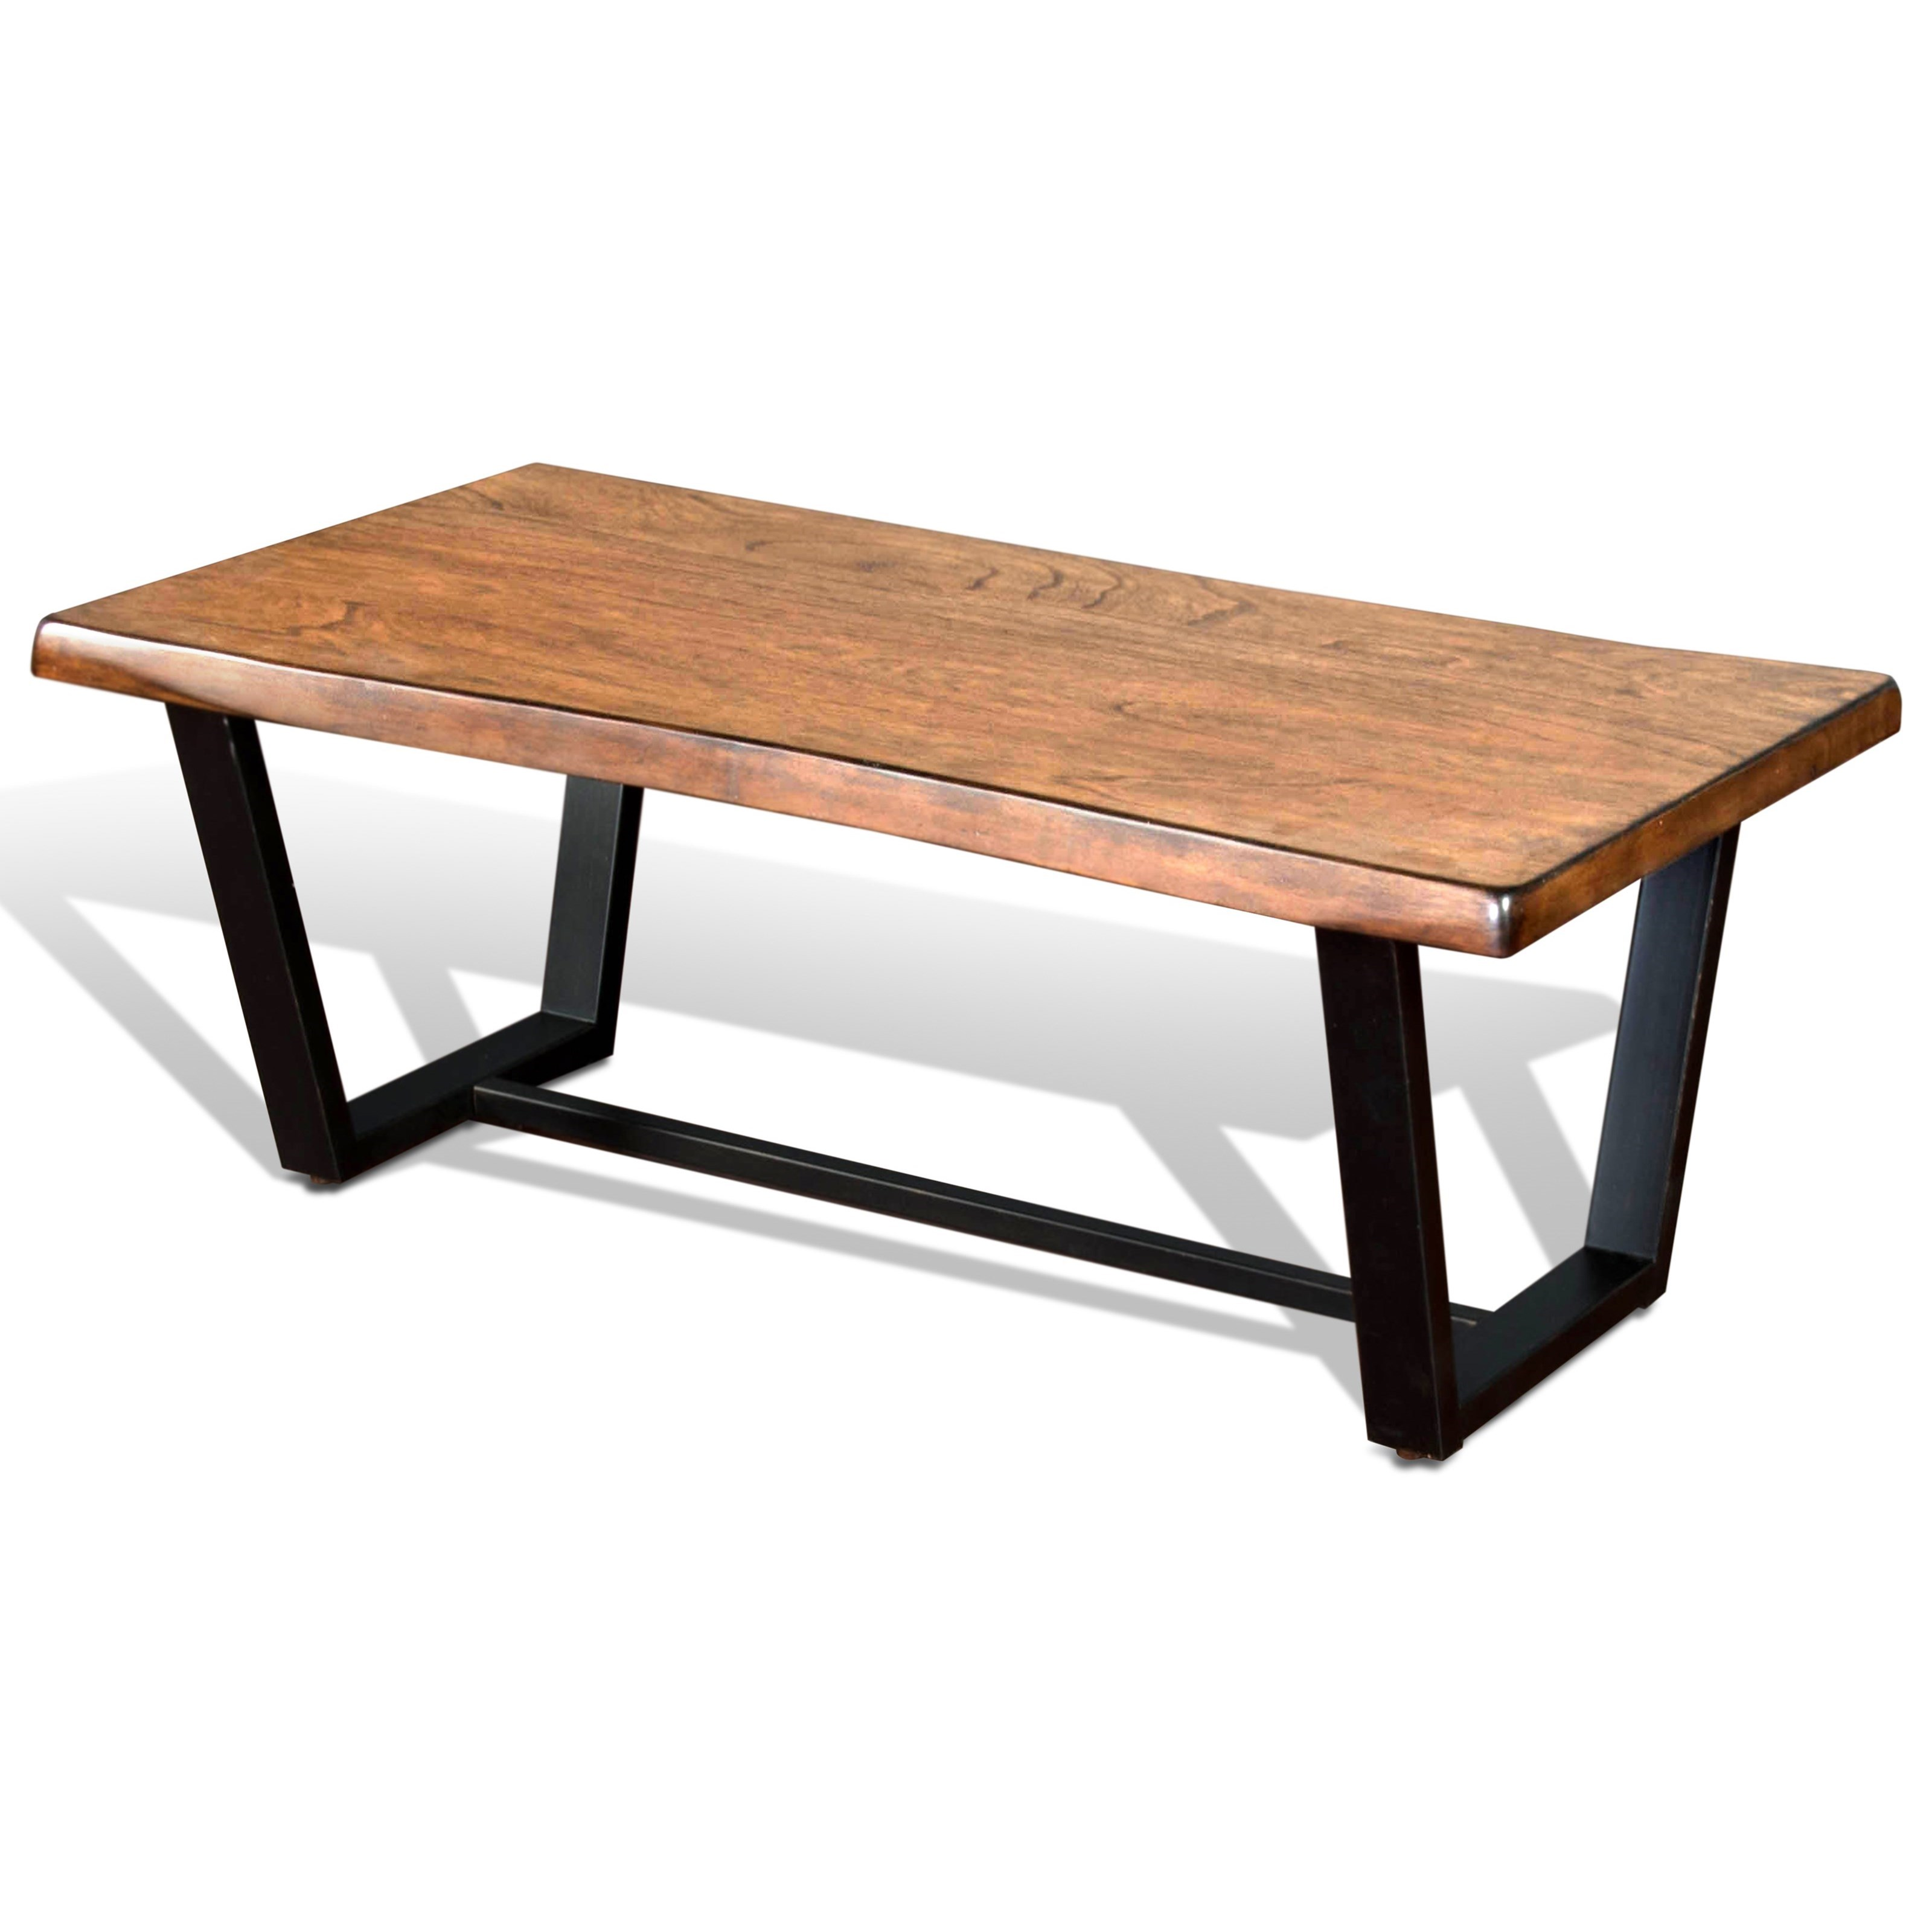 Sunny Designs Cresent Hill Live Edge Coffee Table - Item Number: 3269NM-C